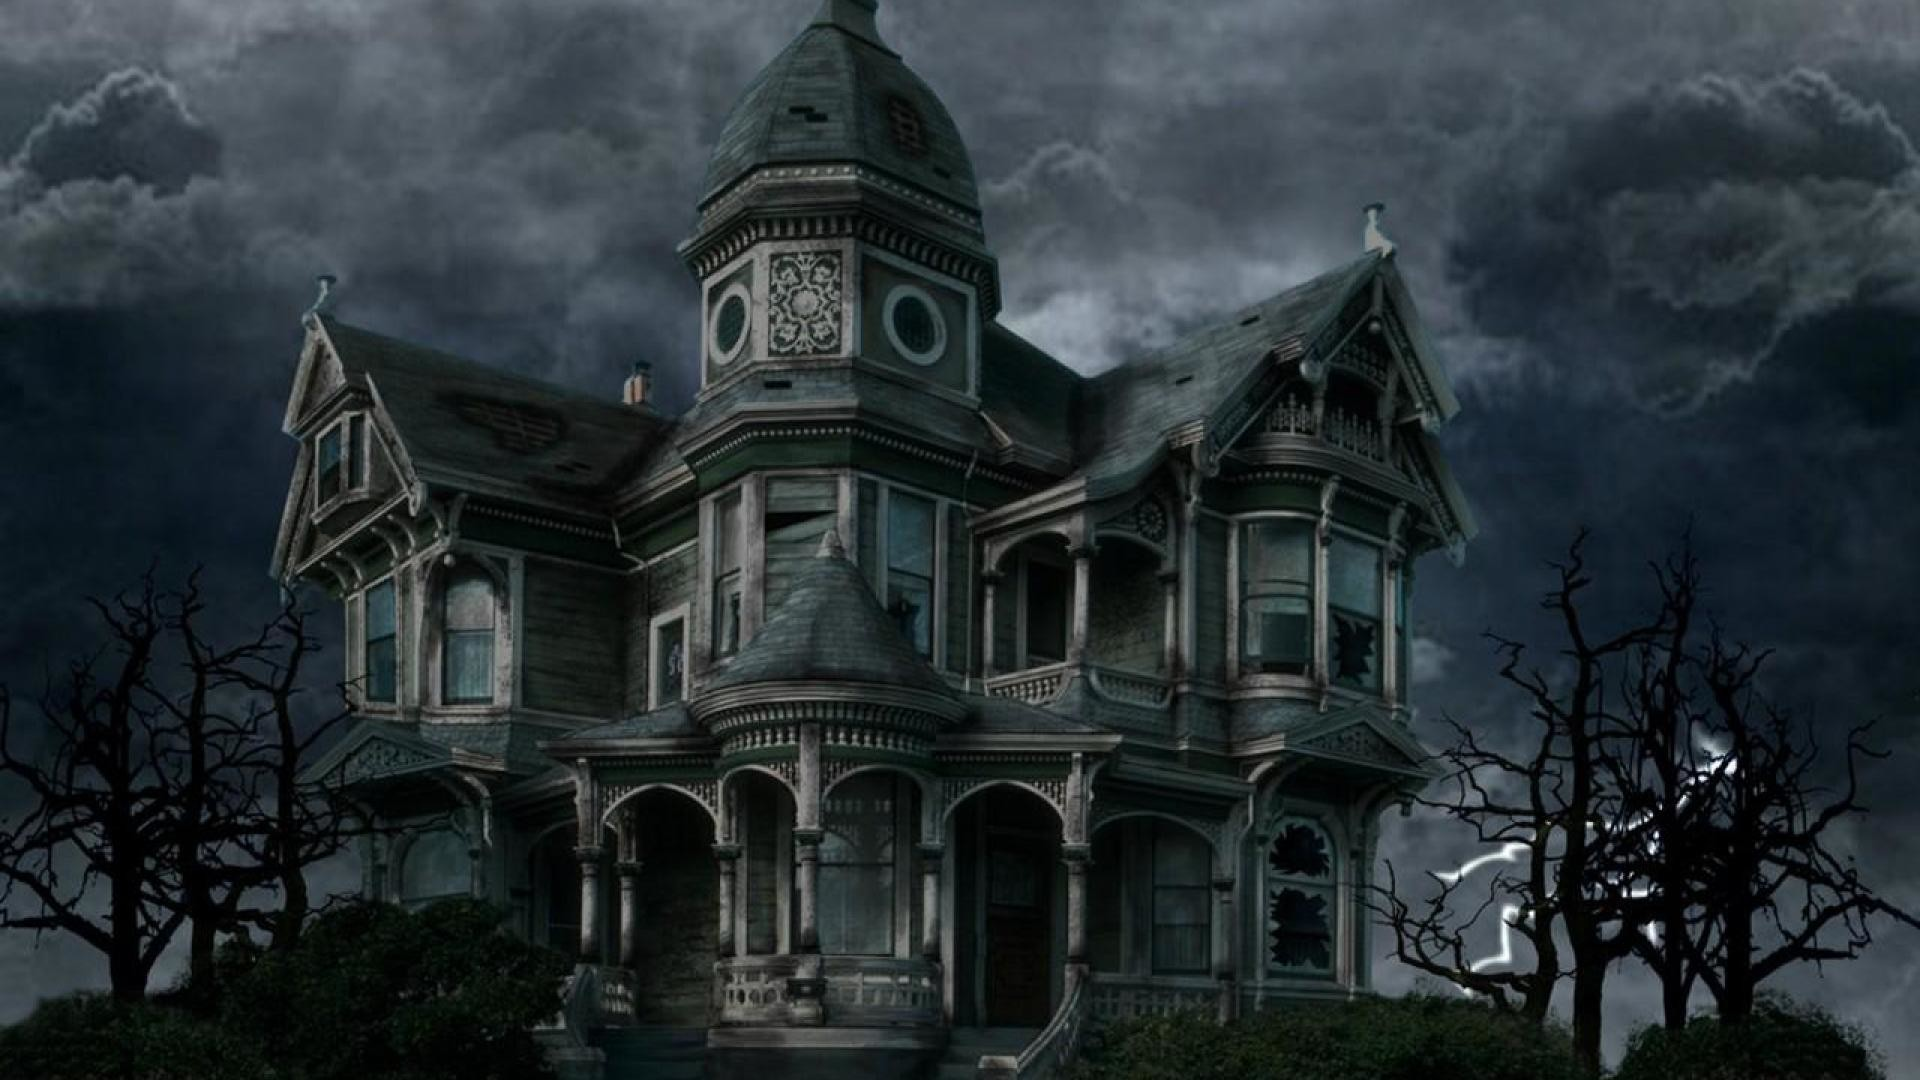 Haunted house wallpapers 62 images for Wallpaper with houses on it